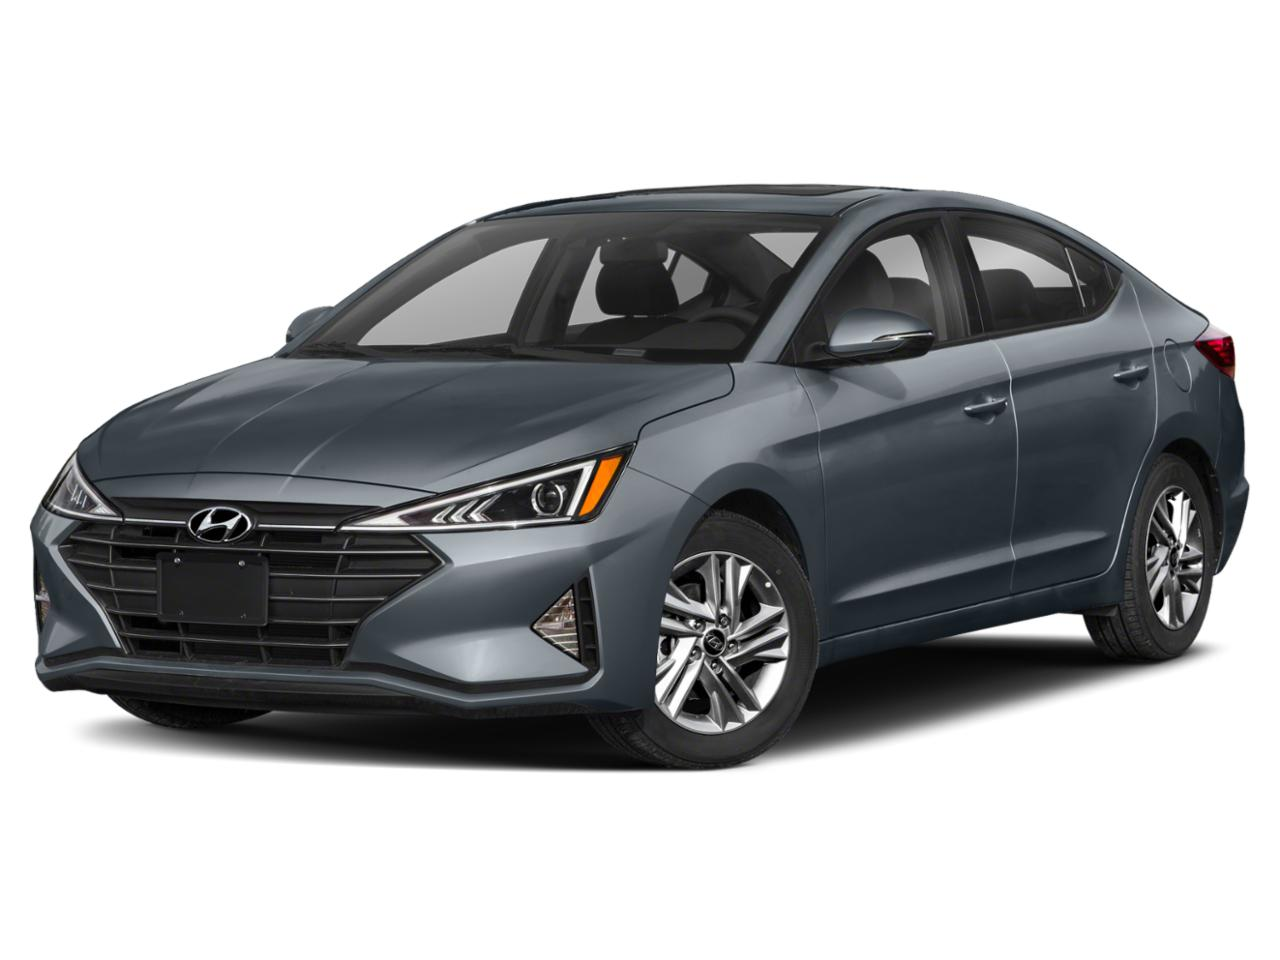 2020 Hyundai Elantra Vehicle Photo in Littleton, CO 80121